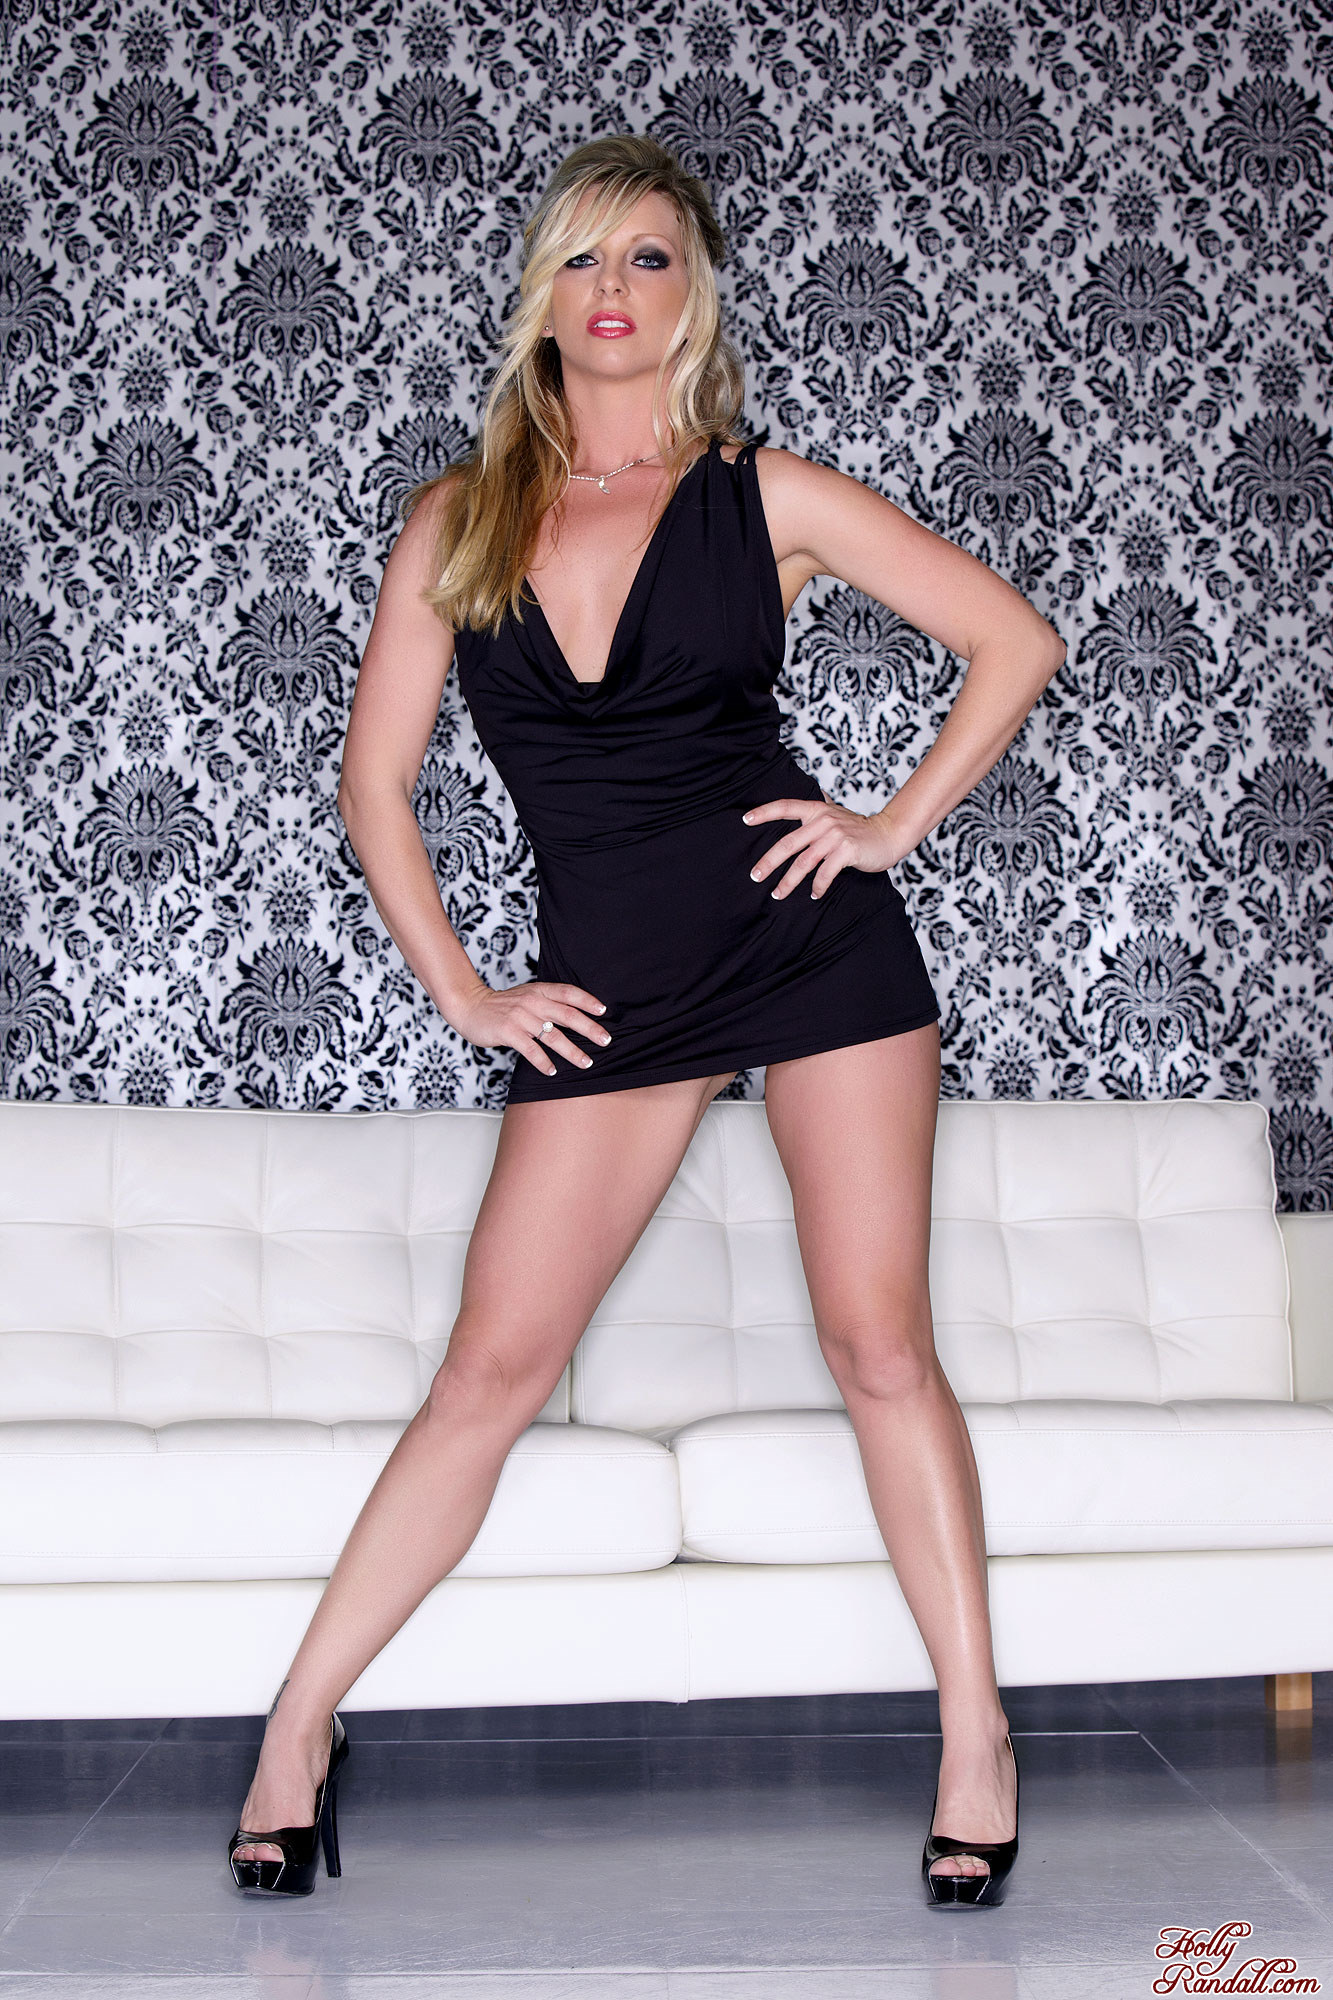 Peachez 18 The Pretty Blonde: Britney Lace Has Nice Cleavage In A Low Cut Little Black